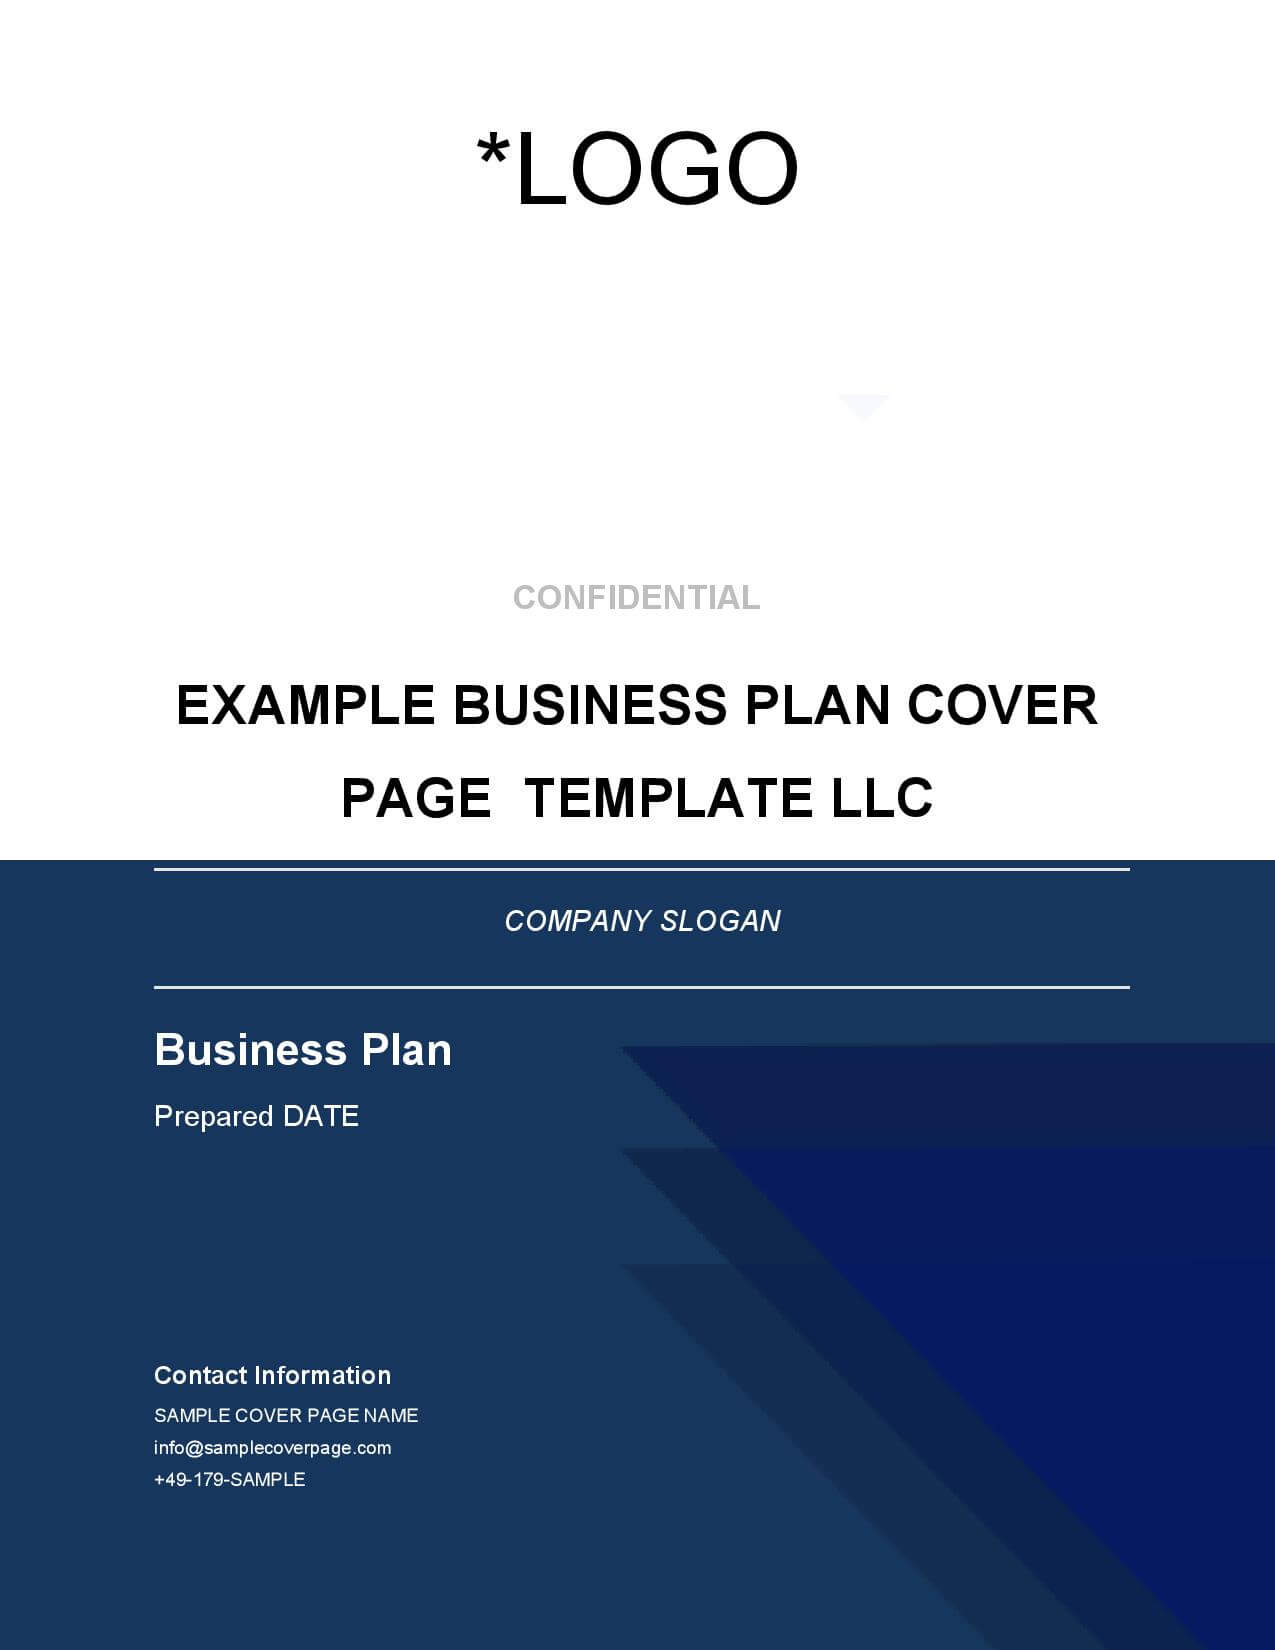 Business plan cover page template brainhive business planning businessplan cover page template en 1 page 001 cheaphphosting Choice Image